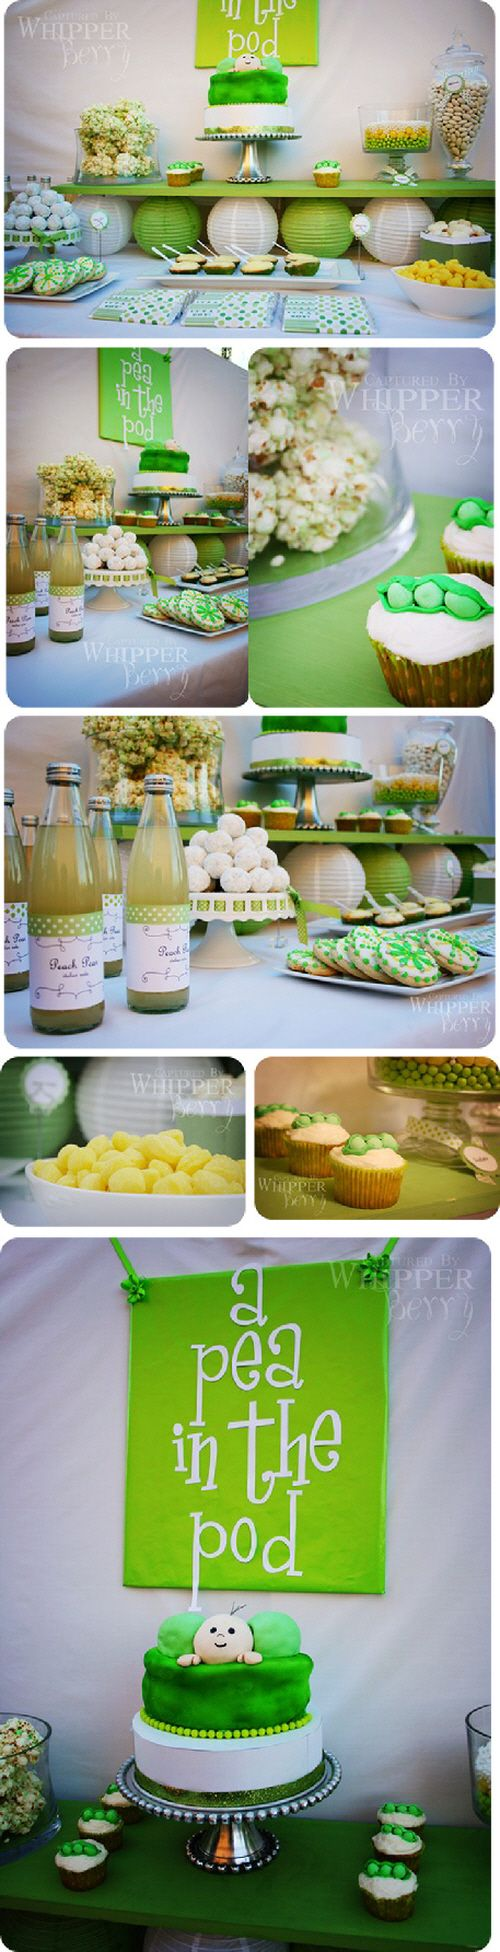 What a cute baby shower idea! Keep this in mind for future showers I'll throw :) @Jamie Sharp (Jack) Like?